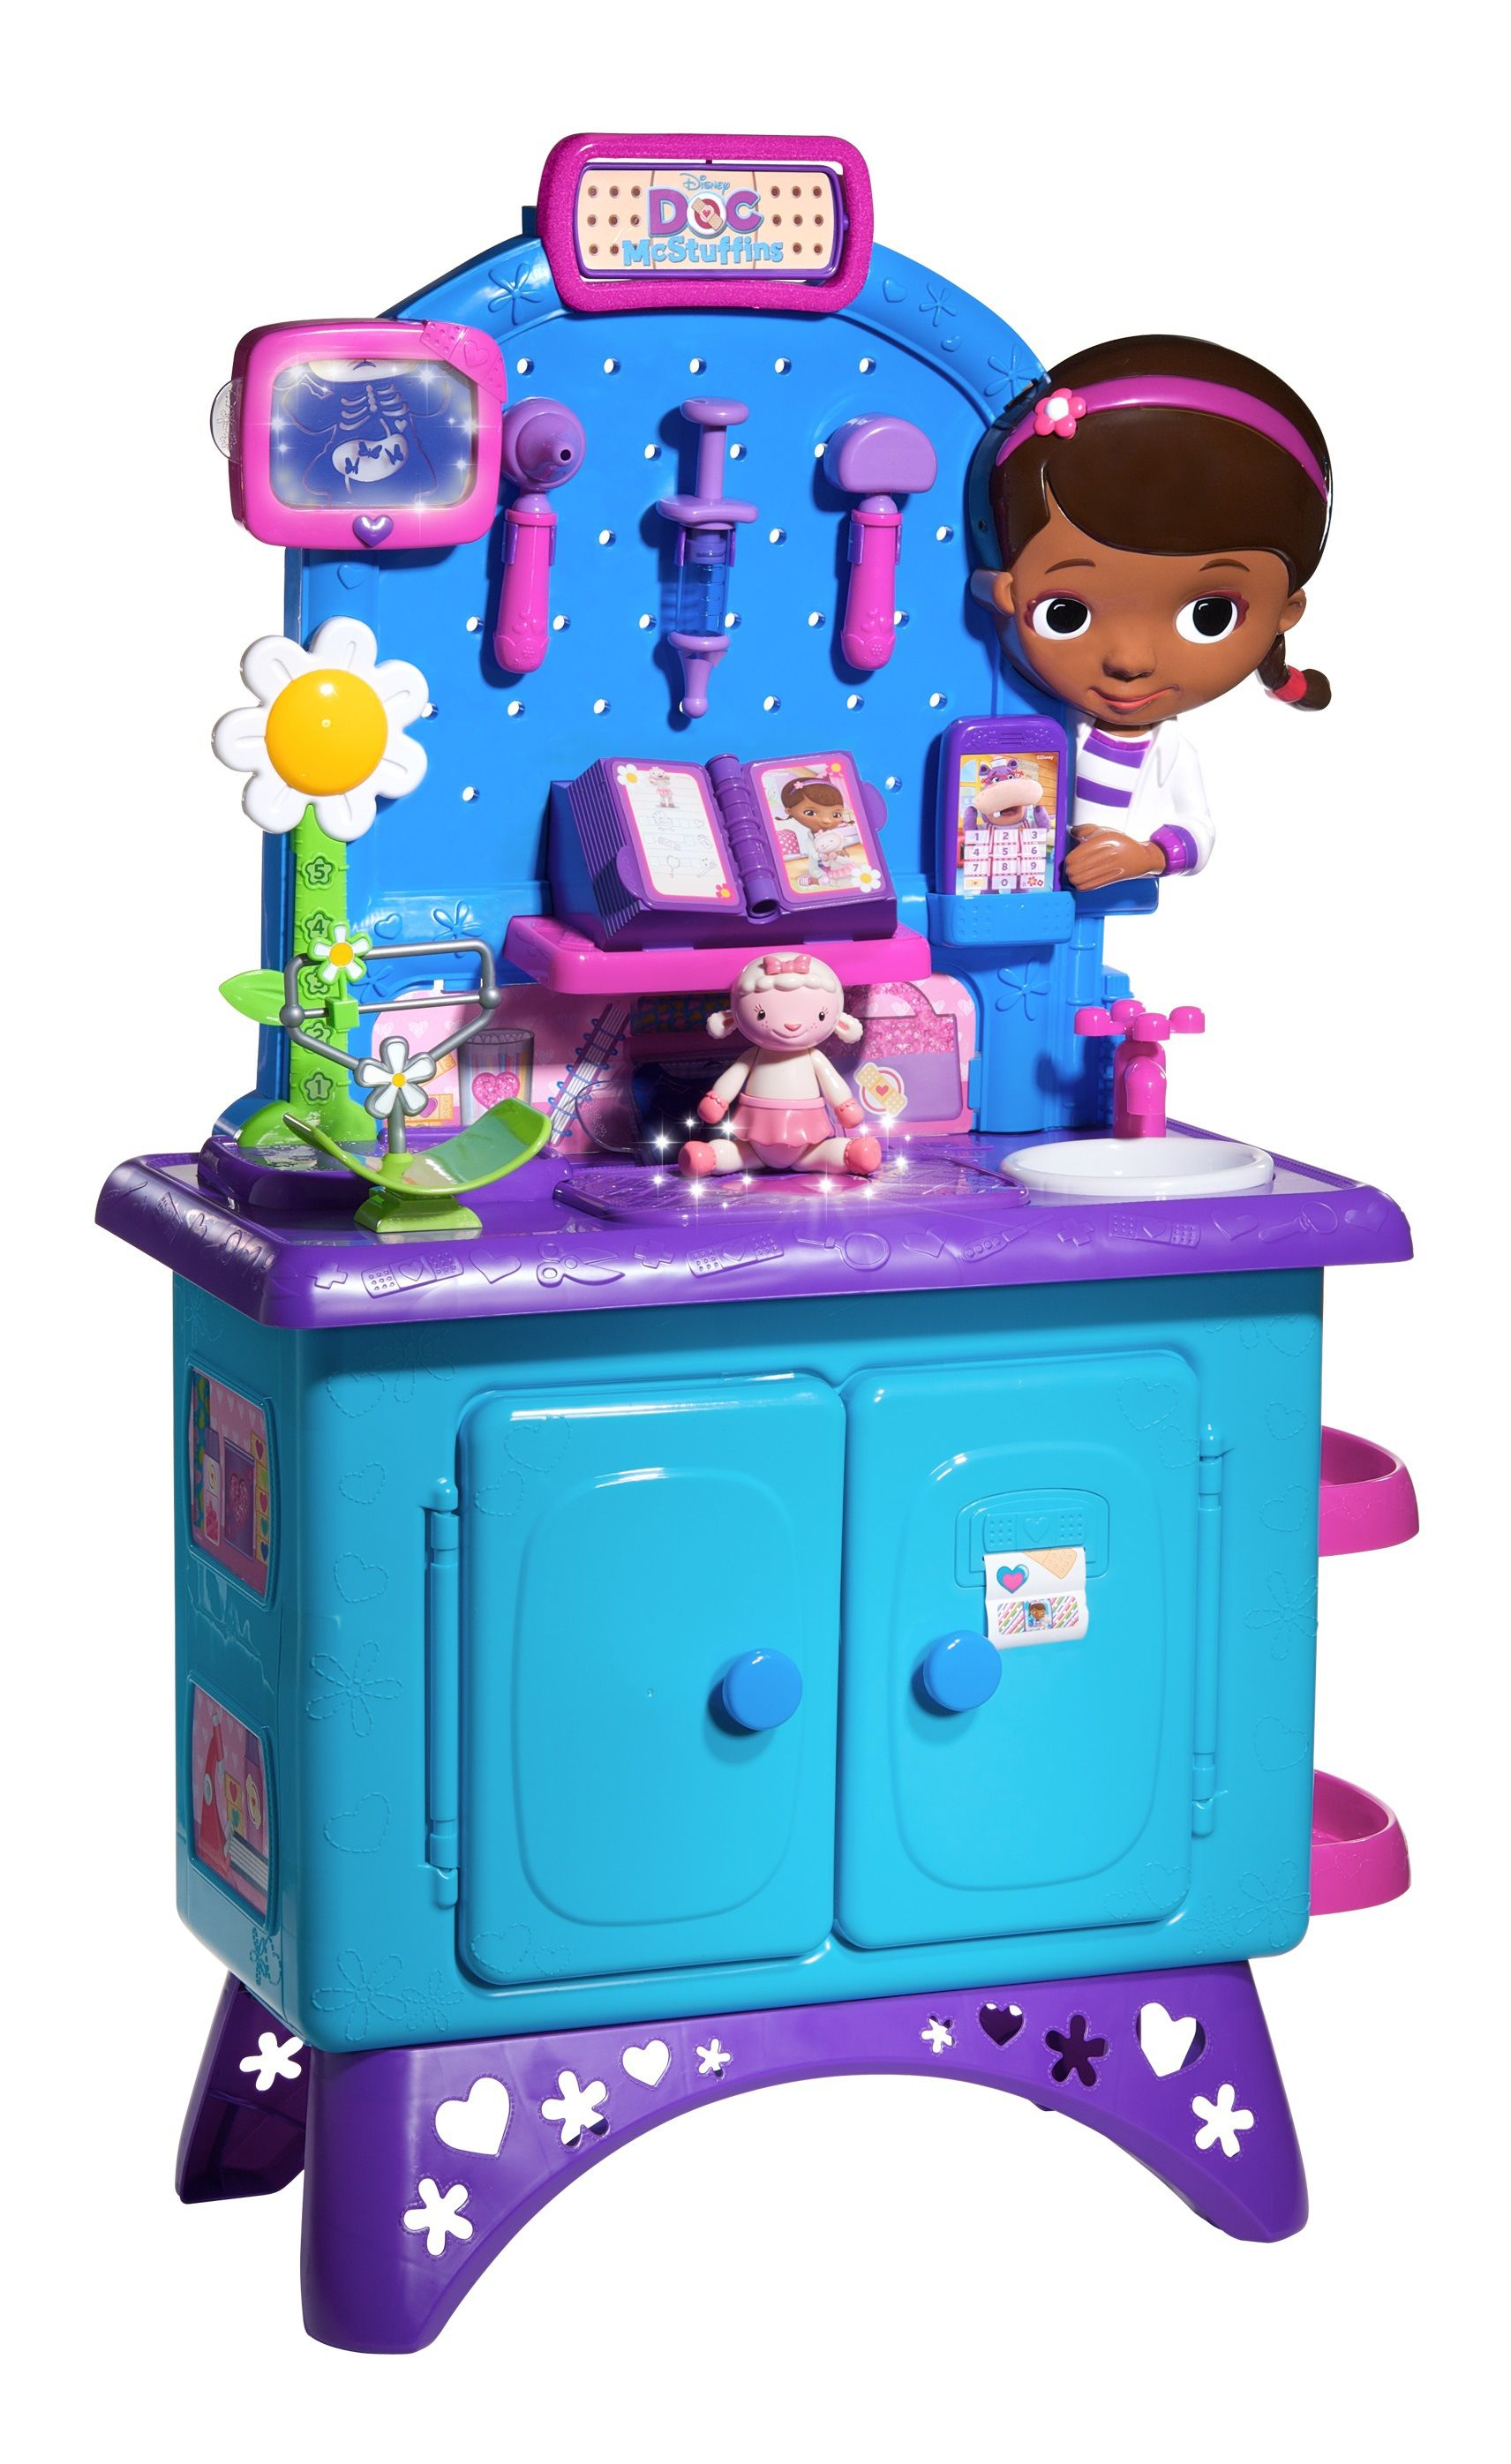 Kids Gear And Products Doc Mcstuffins Toys Holiday Toys Disney Doc Mcstuffins